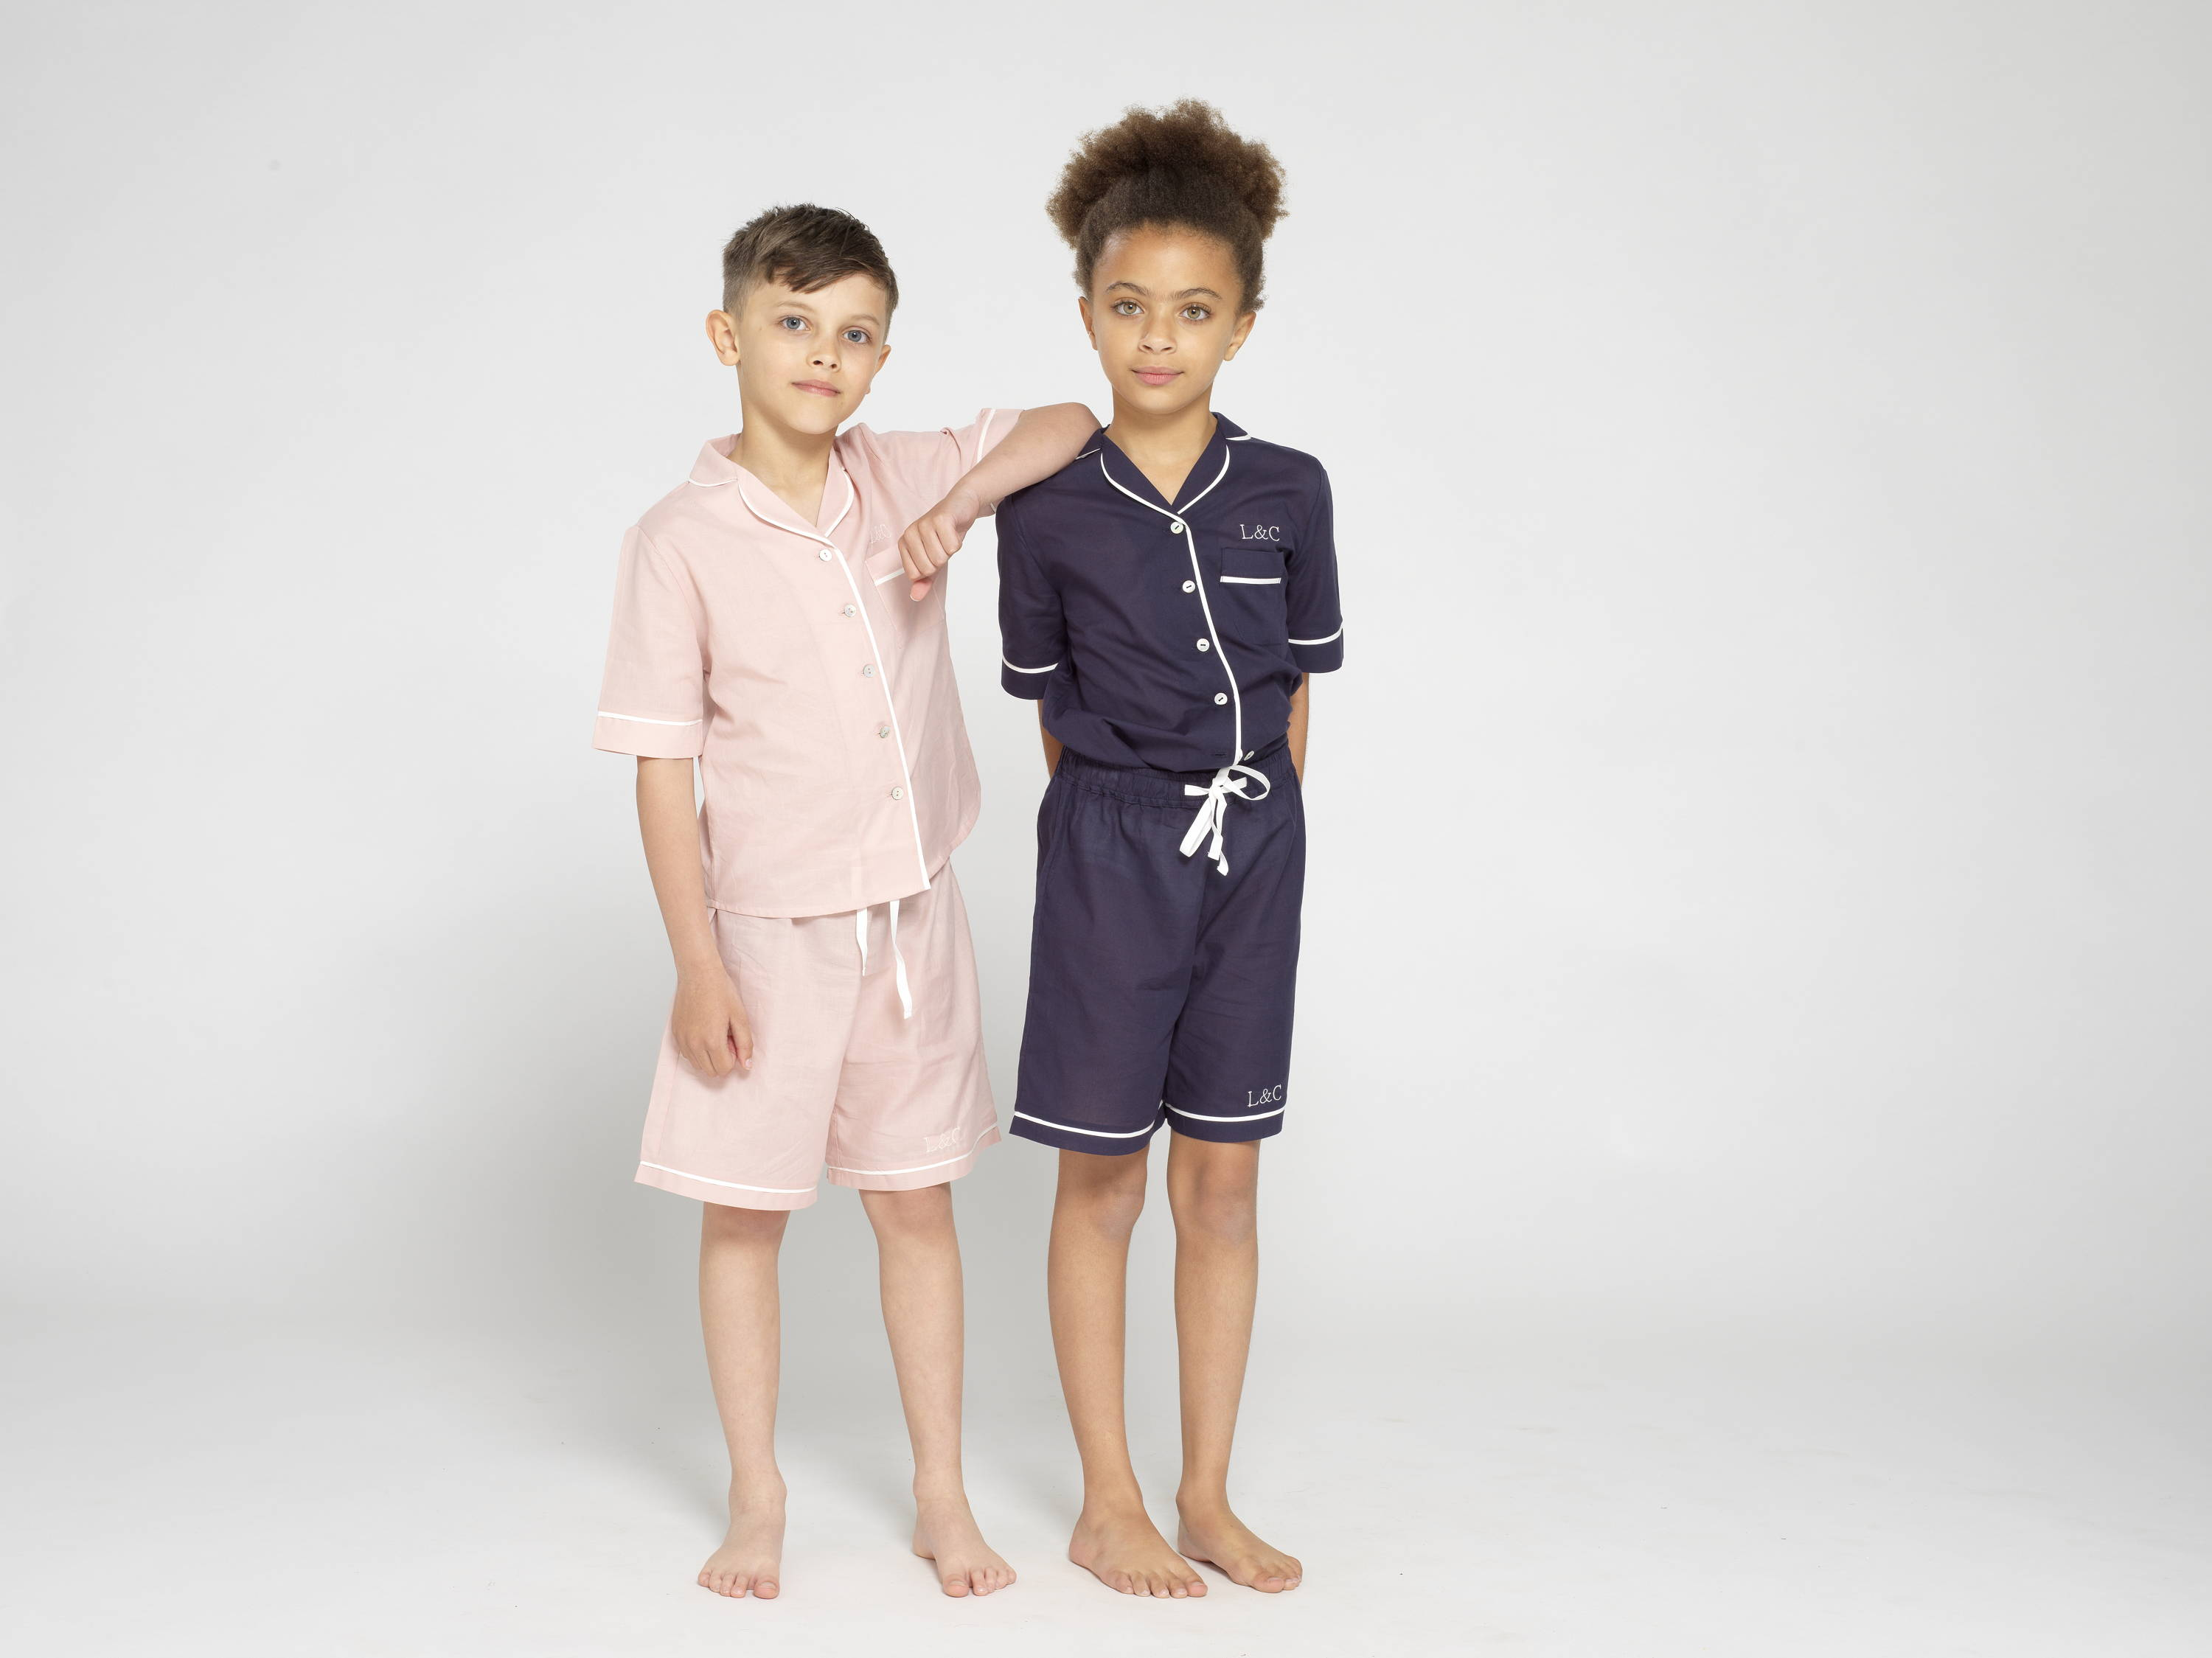 Kids wearing cloud white and midnight blue children pyjamas respectively